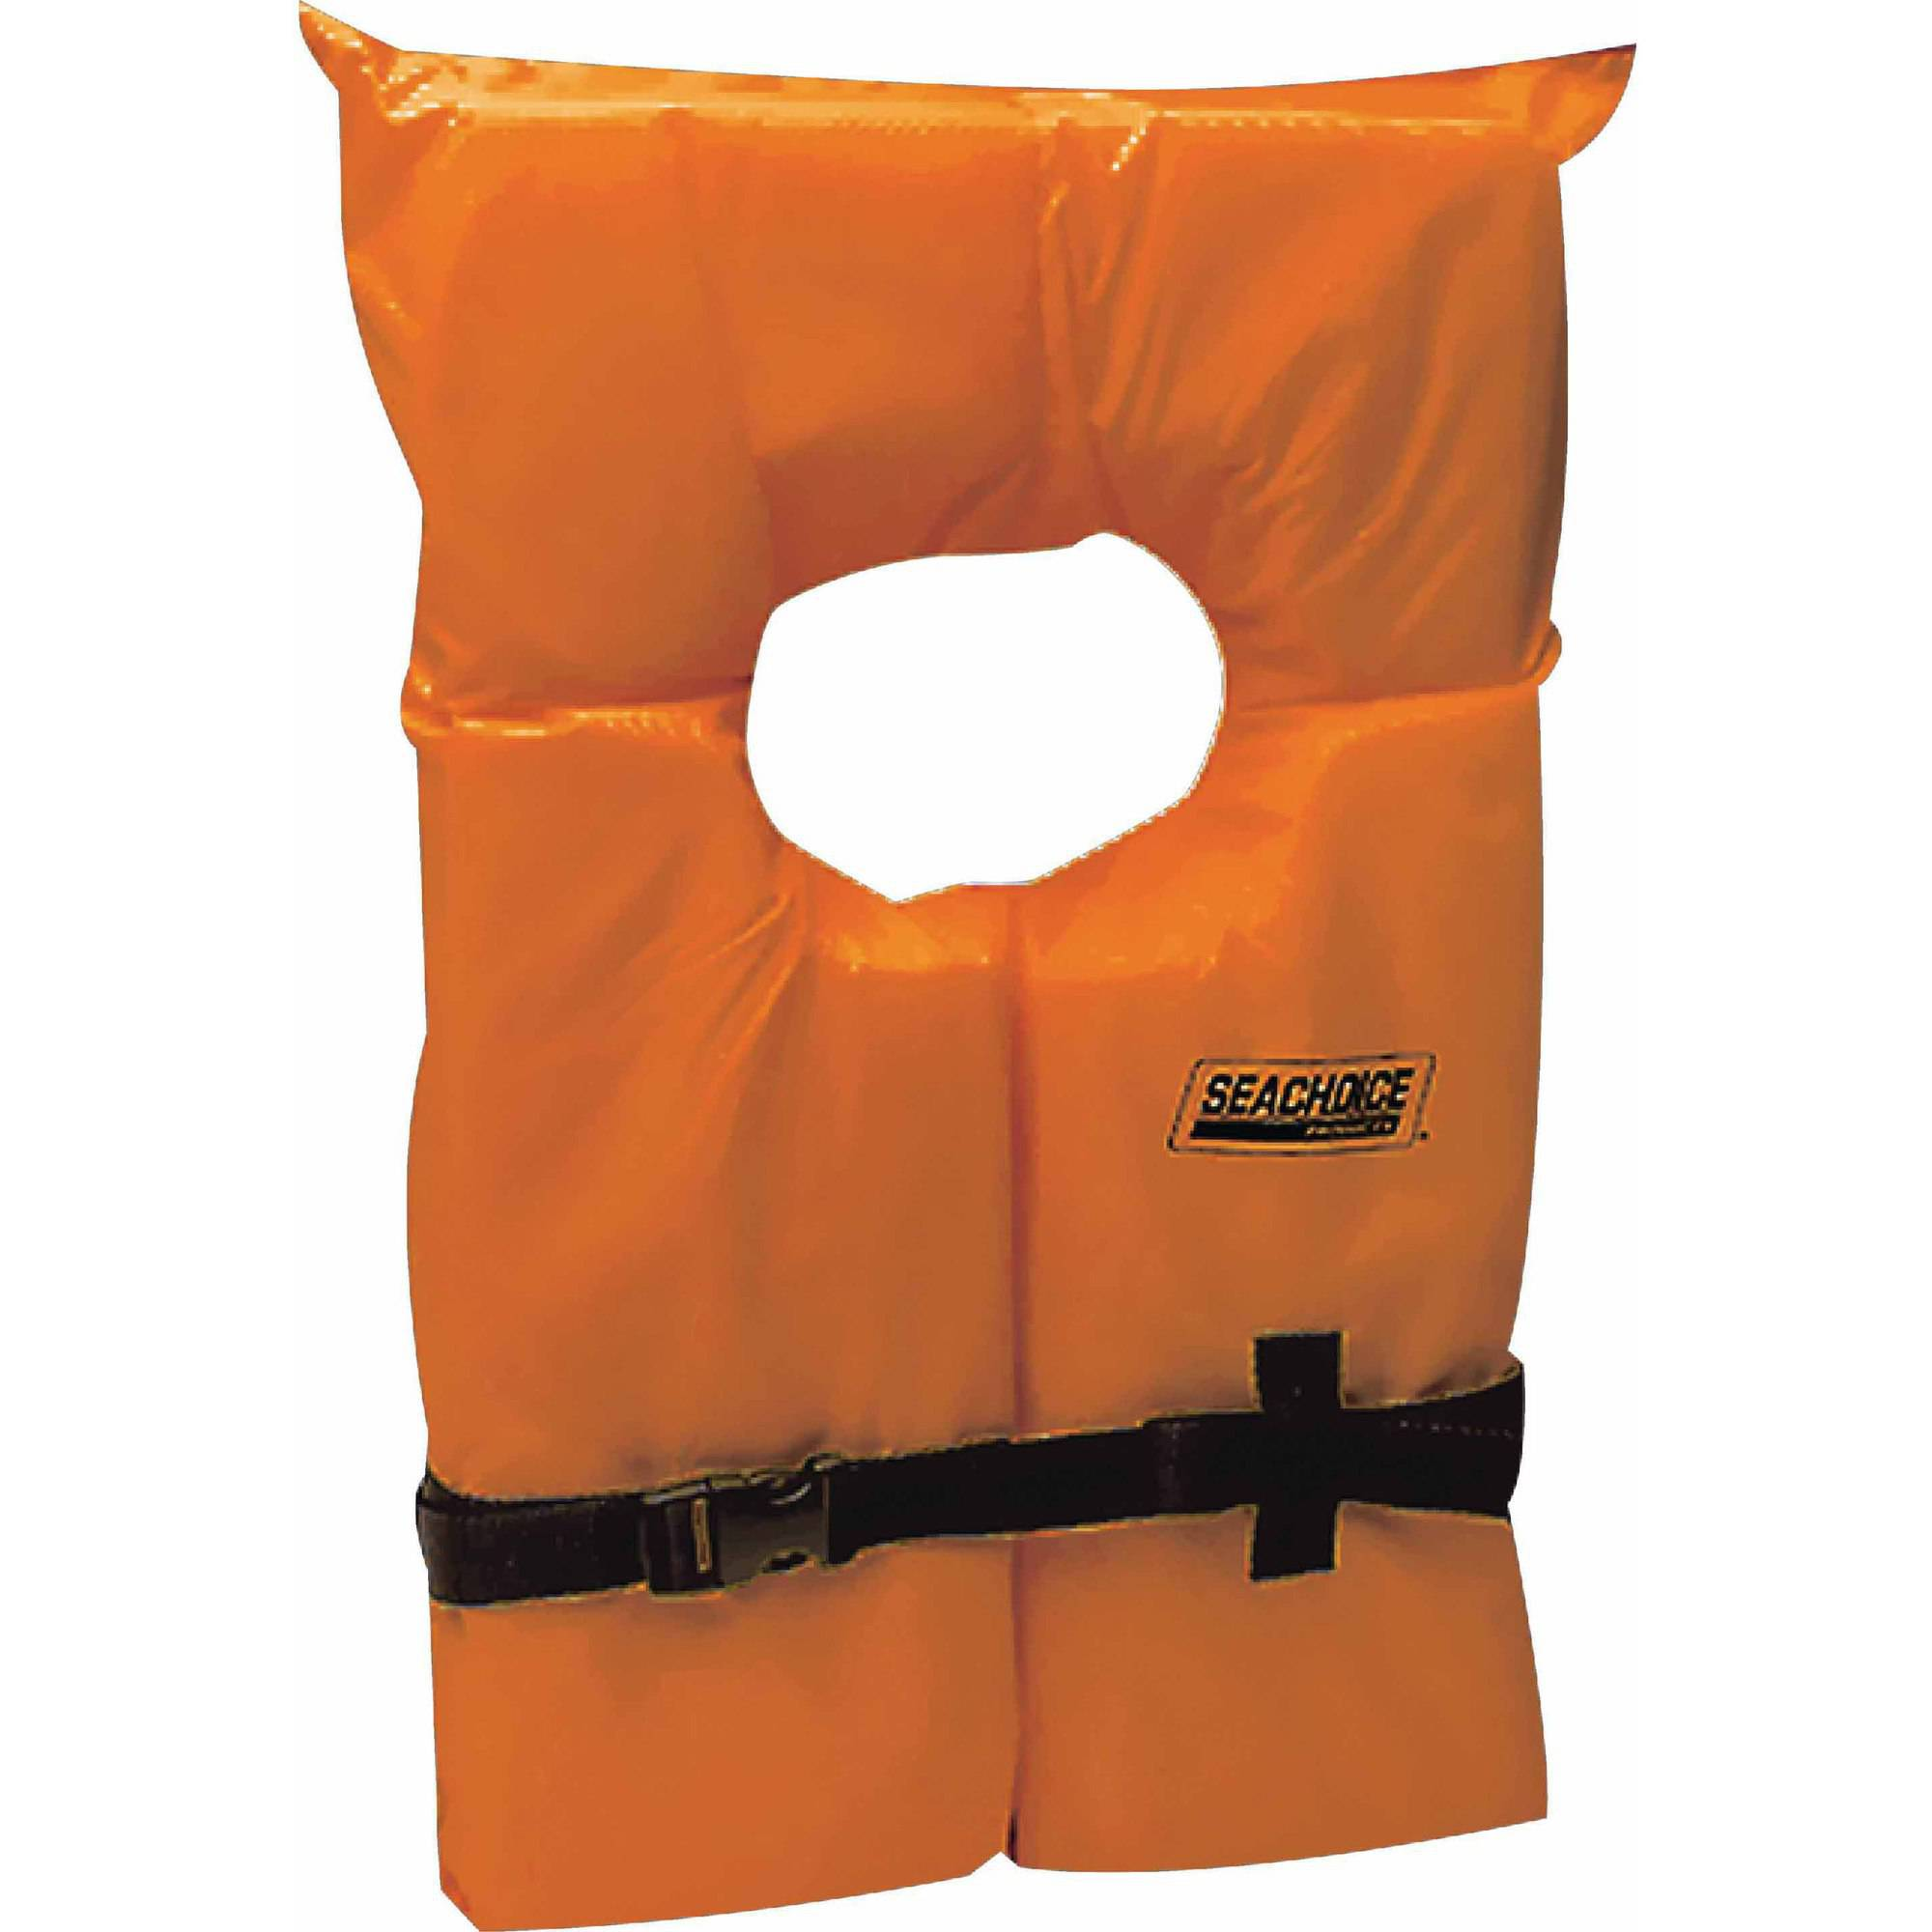 Seachoice Universal Type II USCGA Life Vest, Orange by Seachoice Products